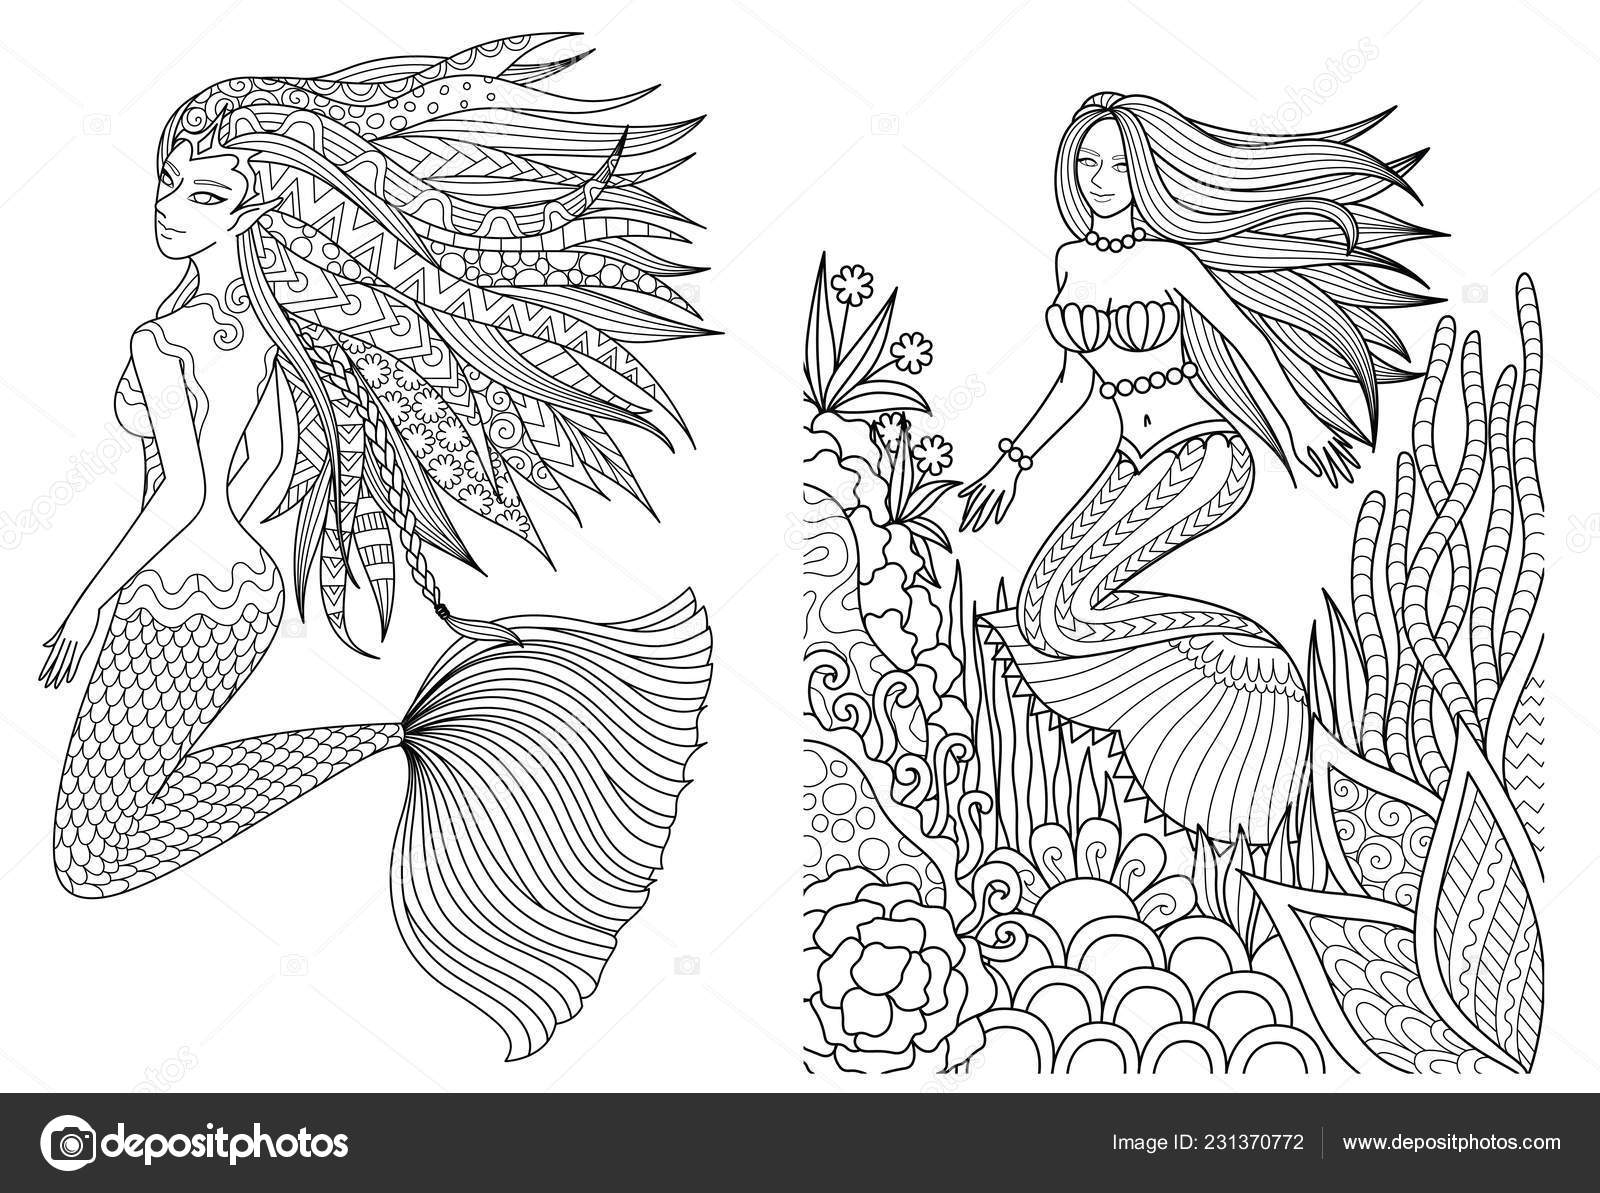 Mermaid Coloring Pages for Adults - Best Coloring Pages For Kids | 1193x1600